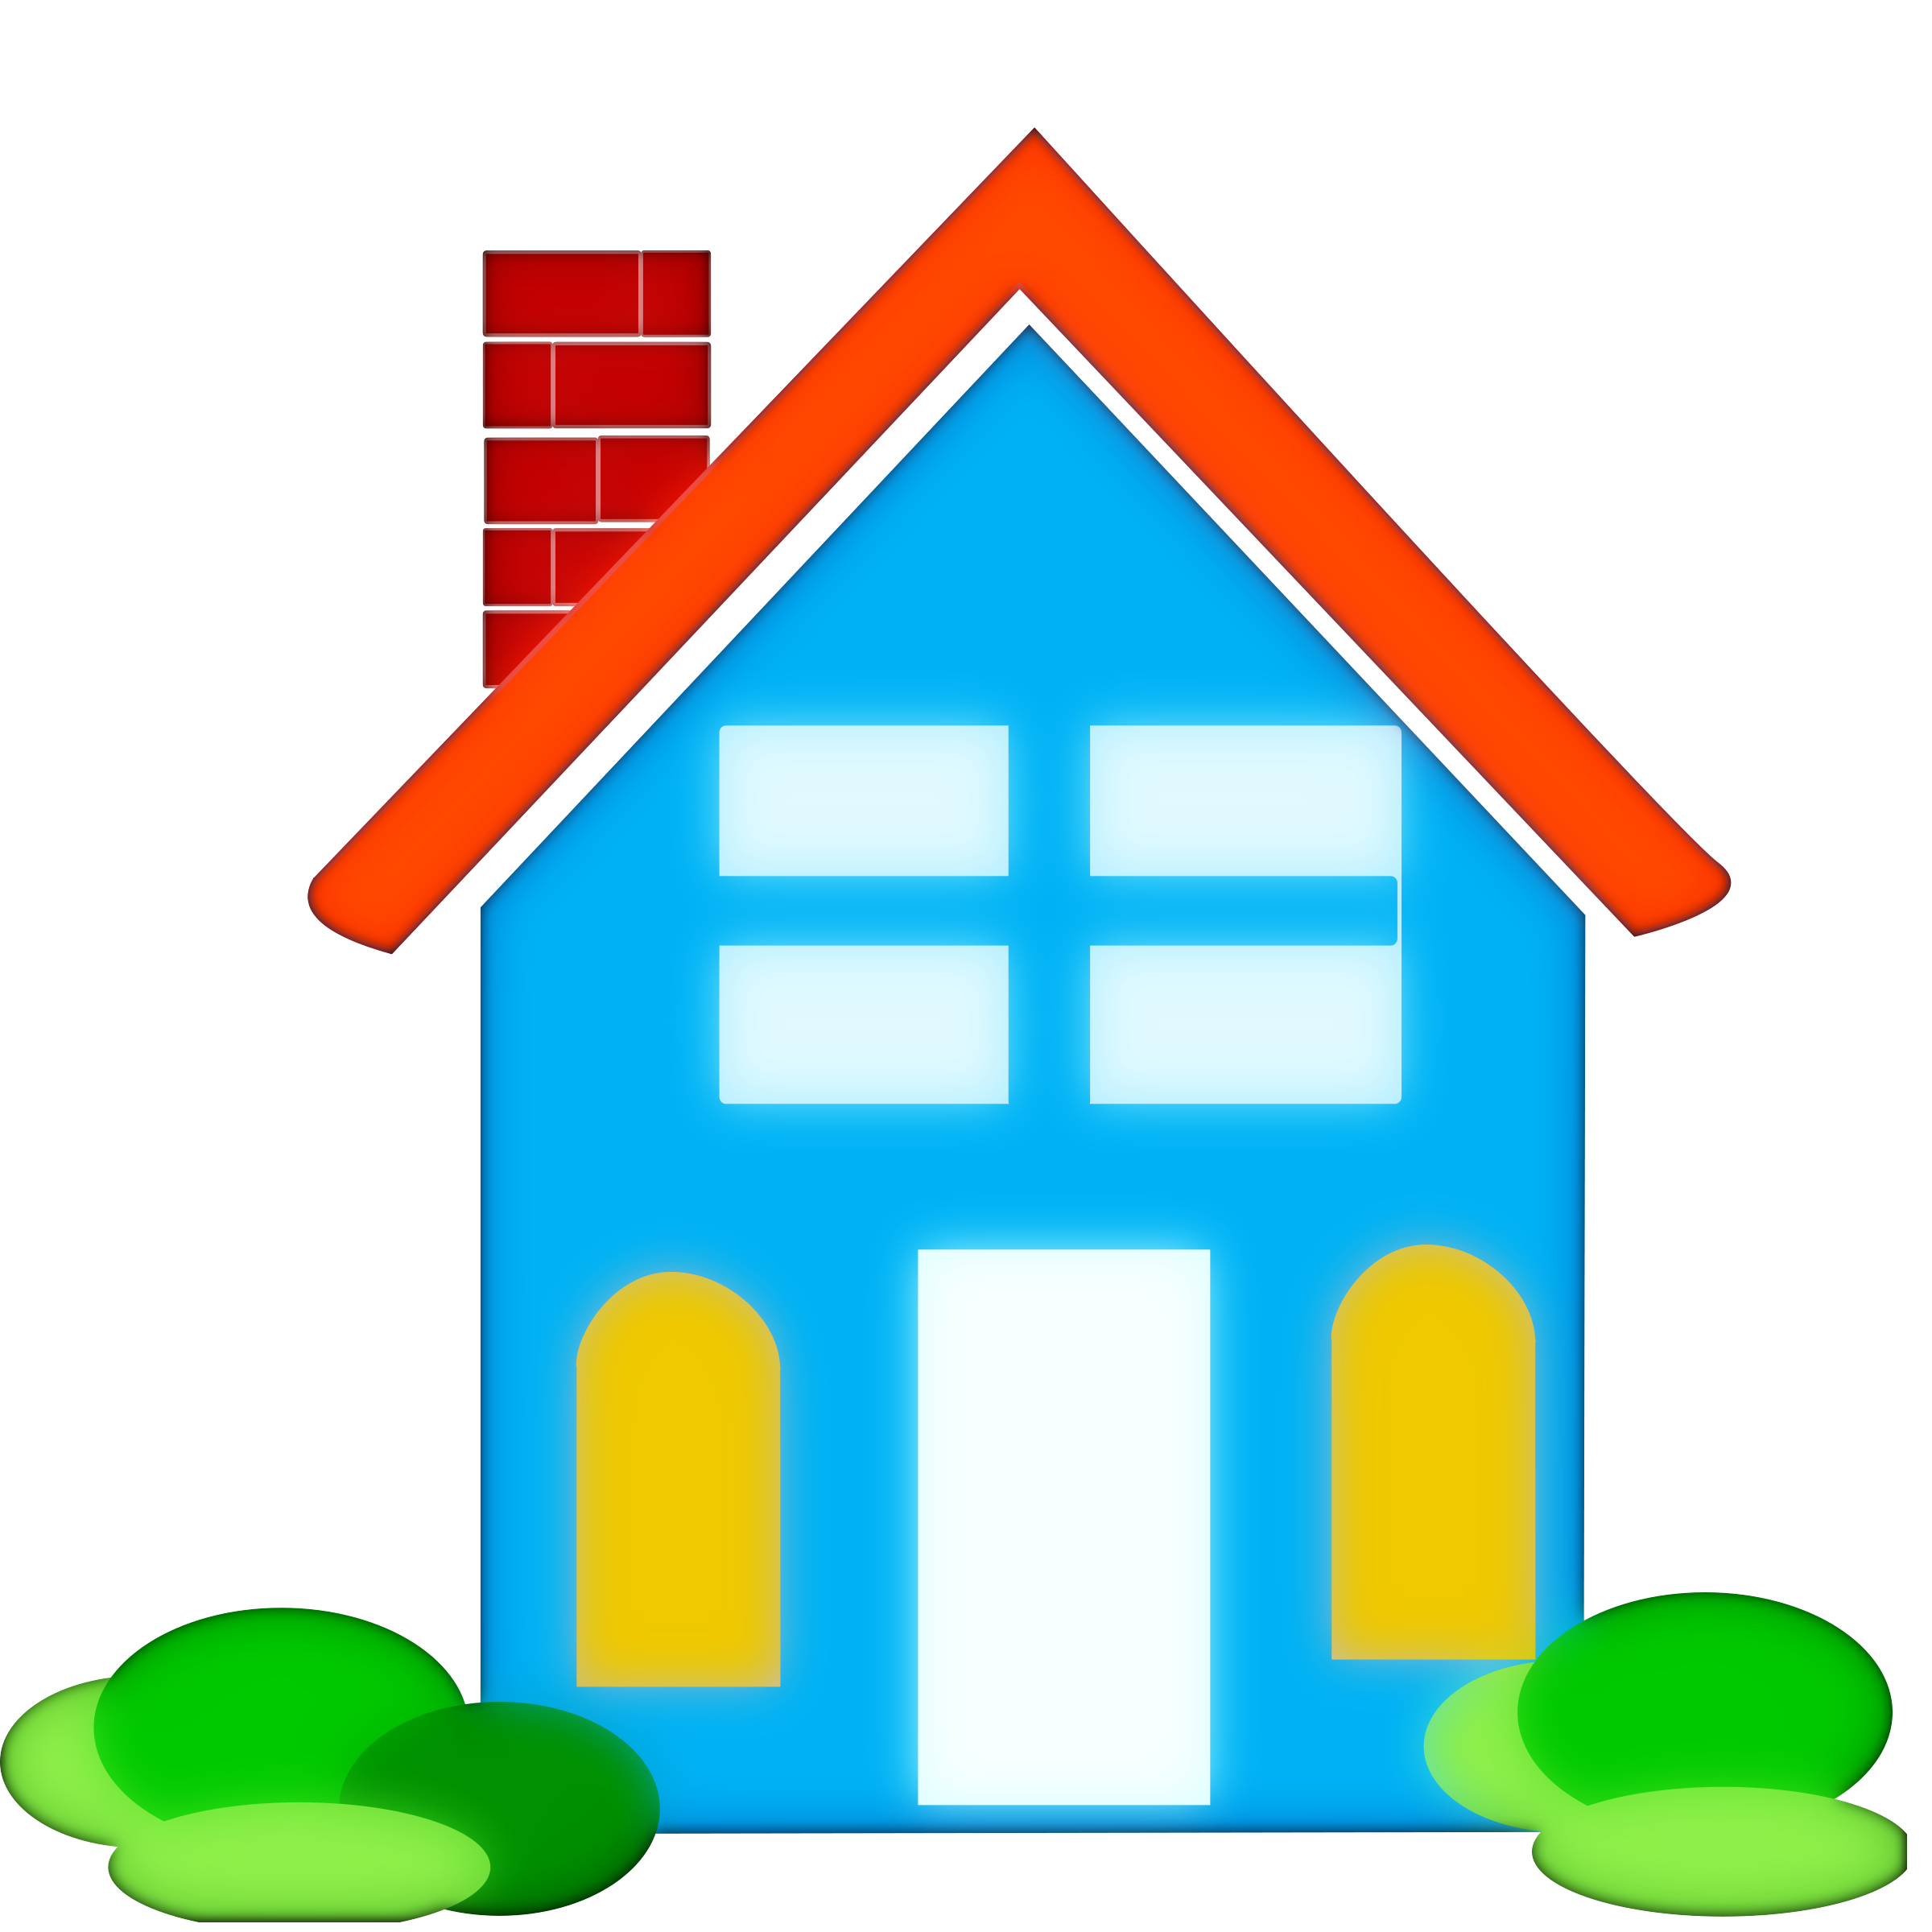 PNG HD Of Homes - 147369